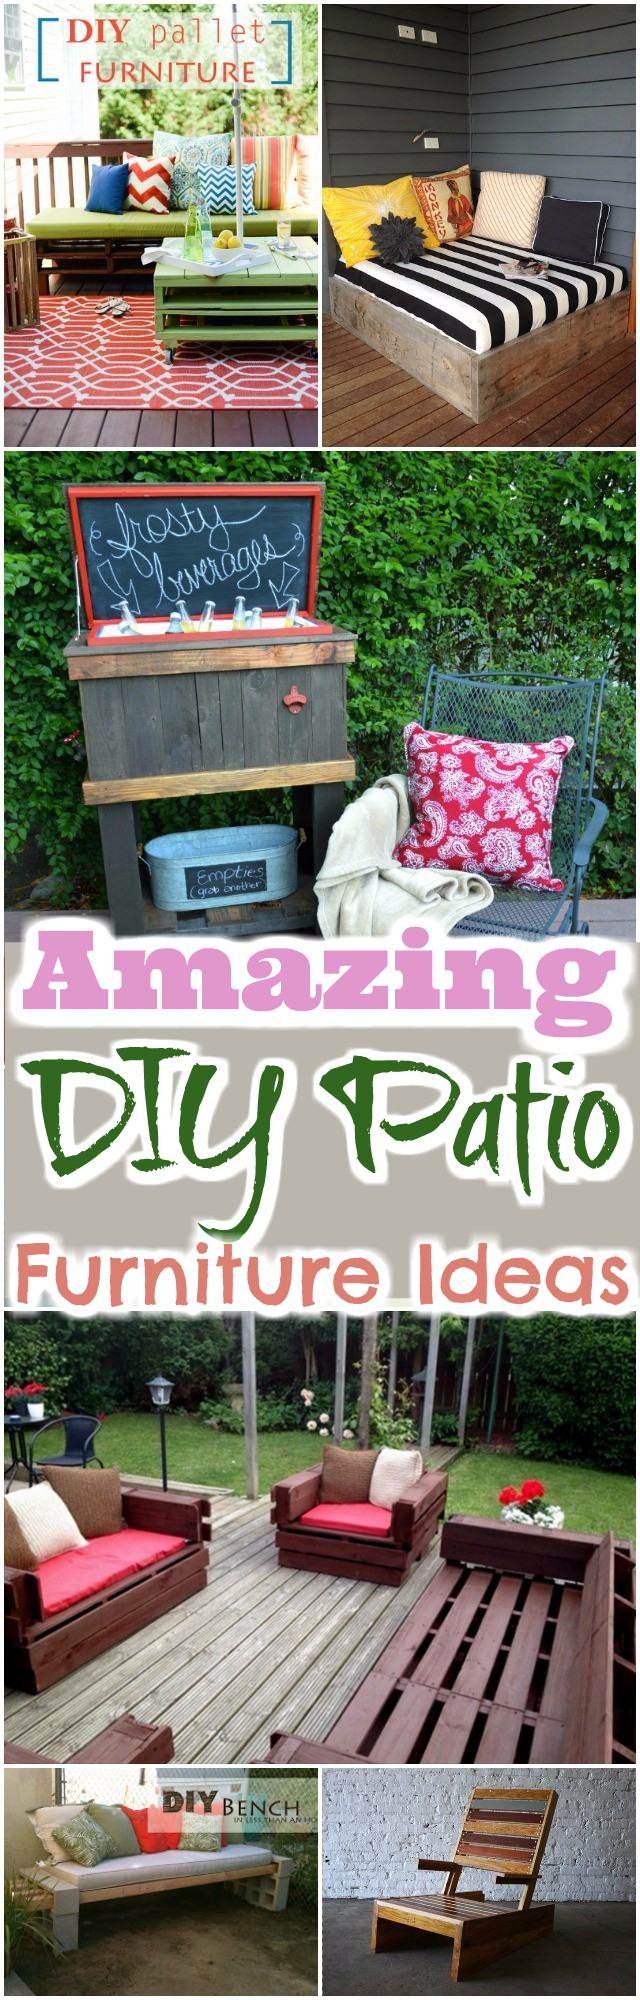 DIY Patio Furniture Ideas 17 Interesting And Amazing DIY Patio Furniture Ideas